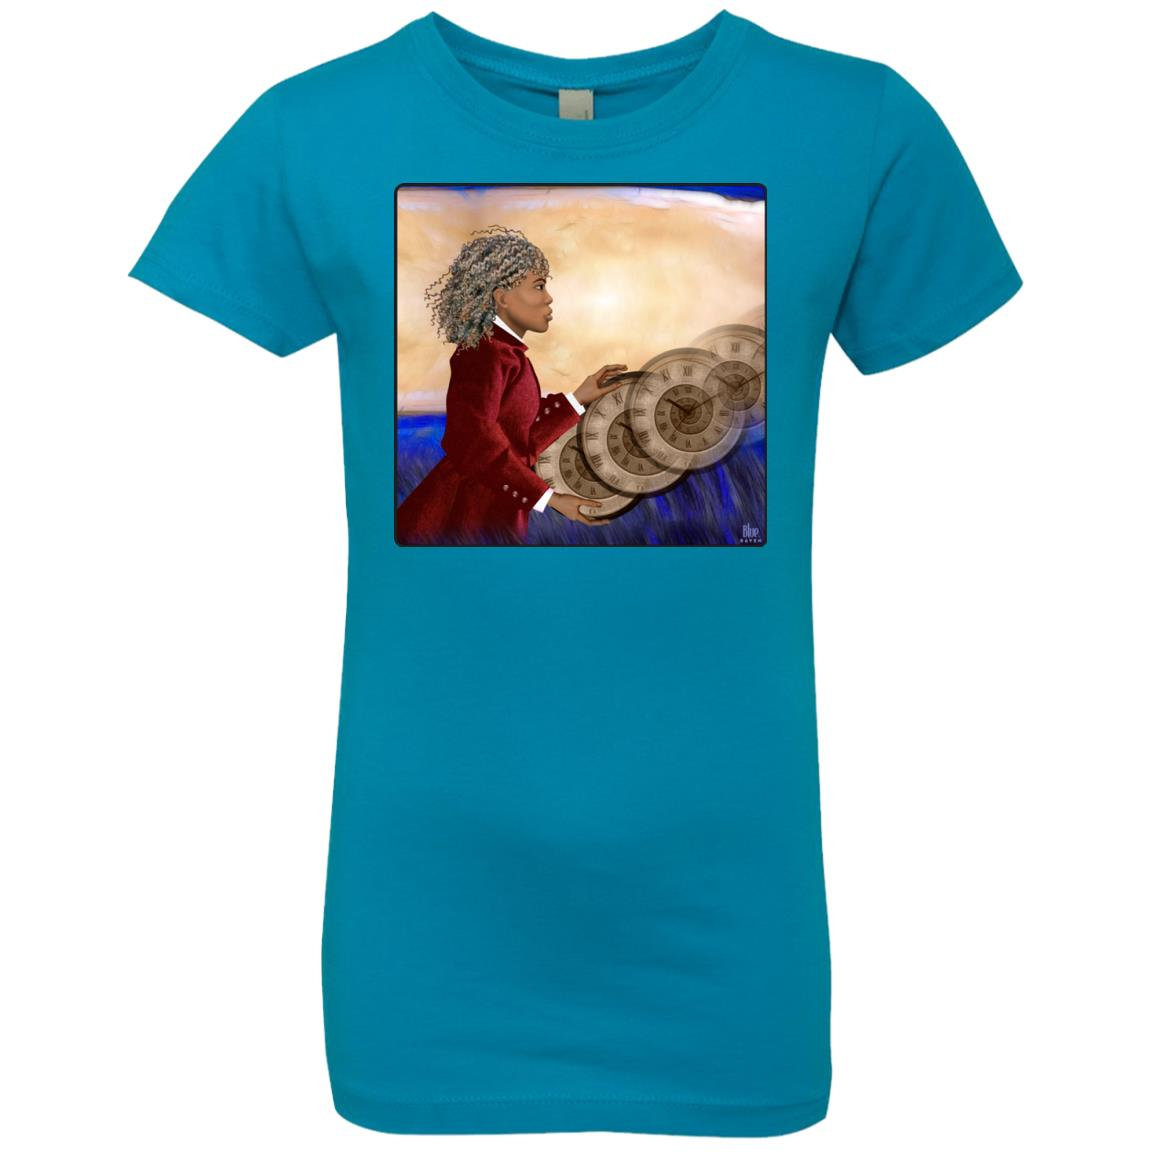 RUSHING TIME - Girl's Premium Cotton T-Shirt